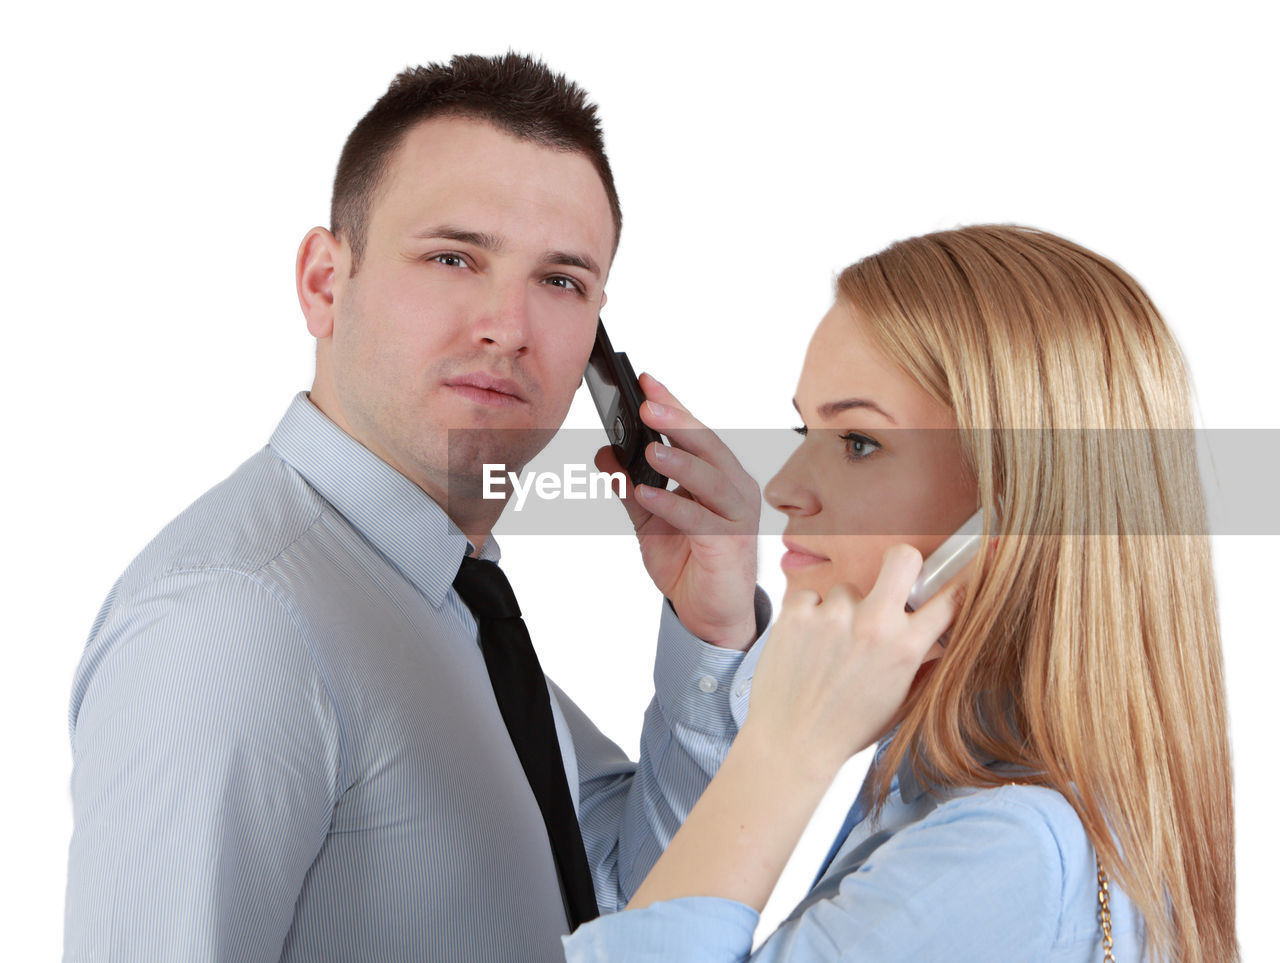 Business people using phone against white background